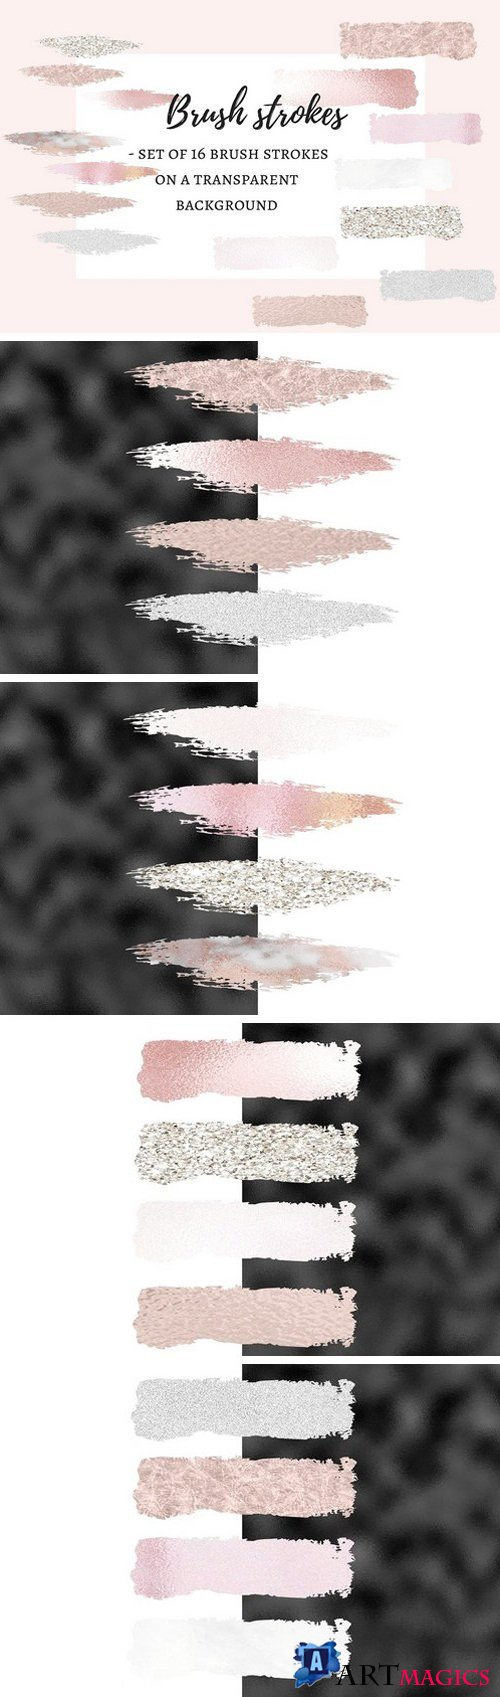 16 Brush strokes clipart 1909054